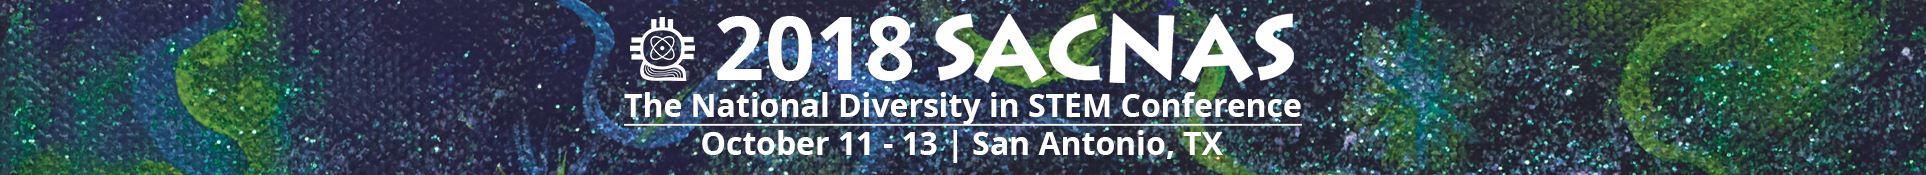 2018 SACNAS - The National Diversity in STEM Conference